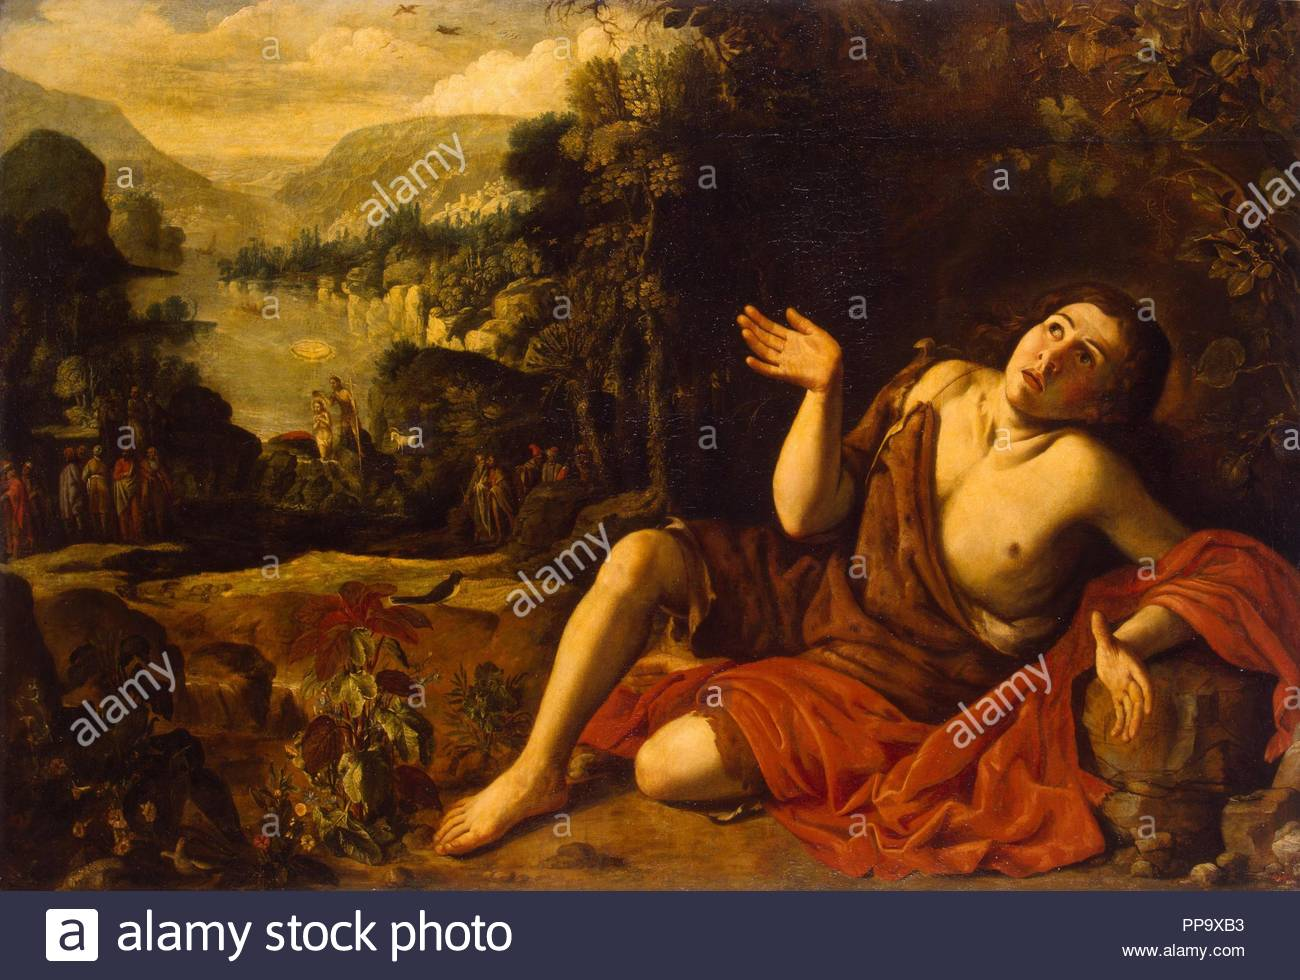 Saint John the Baptist in the Desert. Museum: State Hermitage, St. Petersburg. Author: Collantes, Francisco. - Stock Image